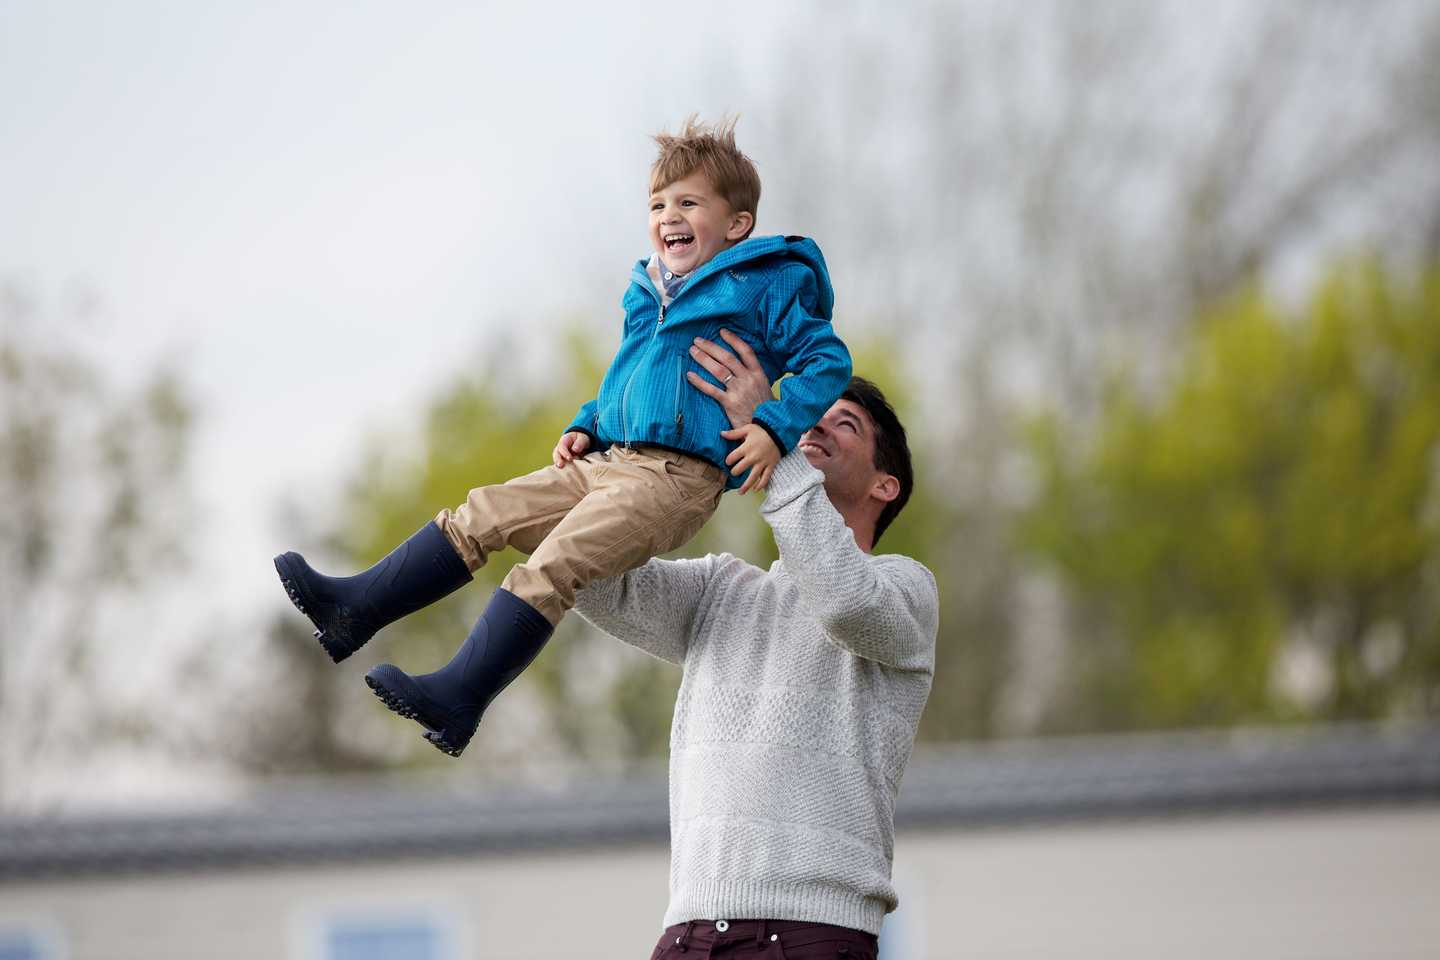 A father and son playing outside